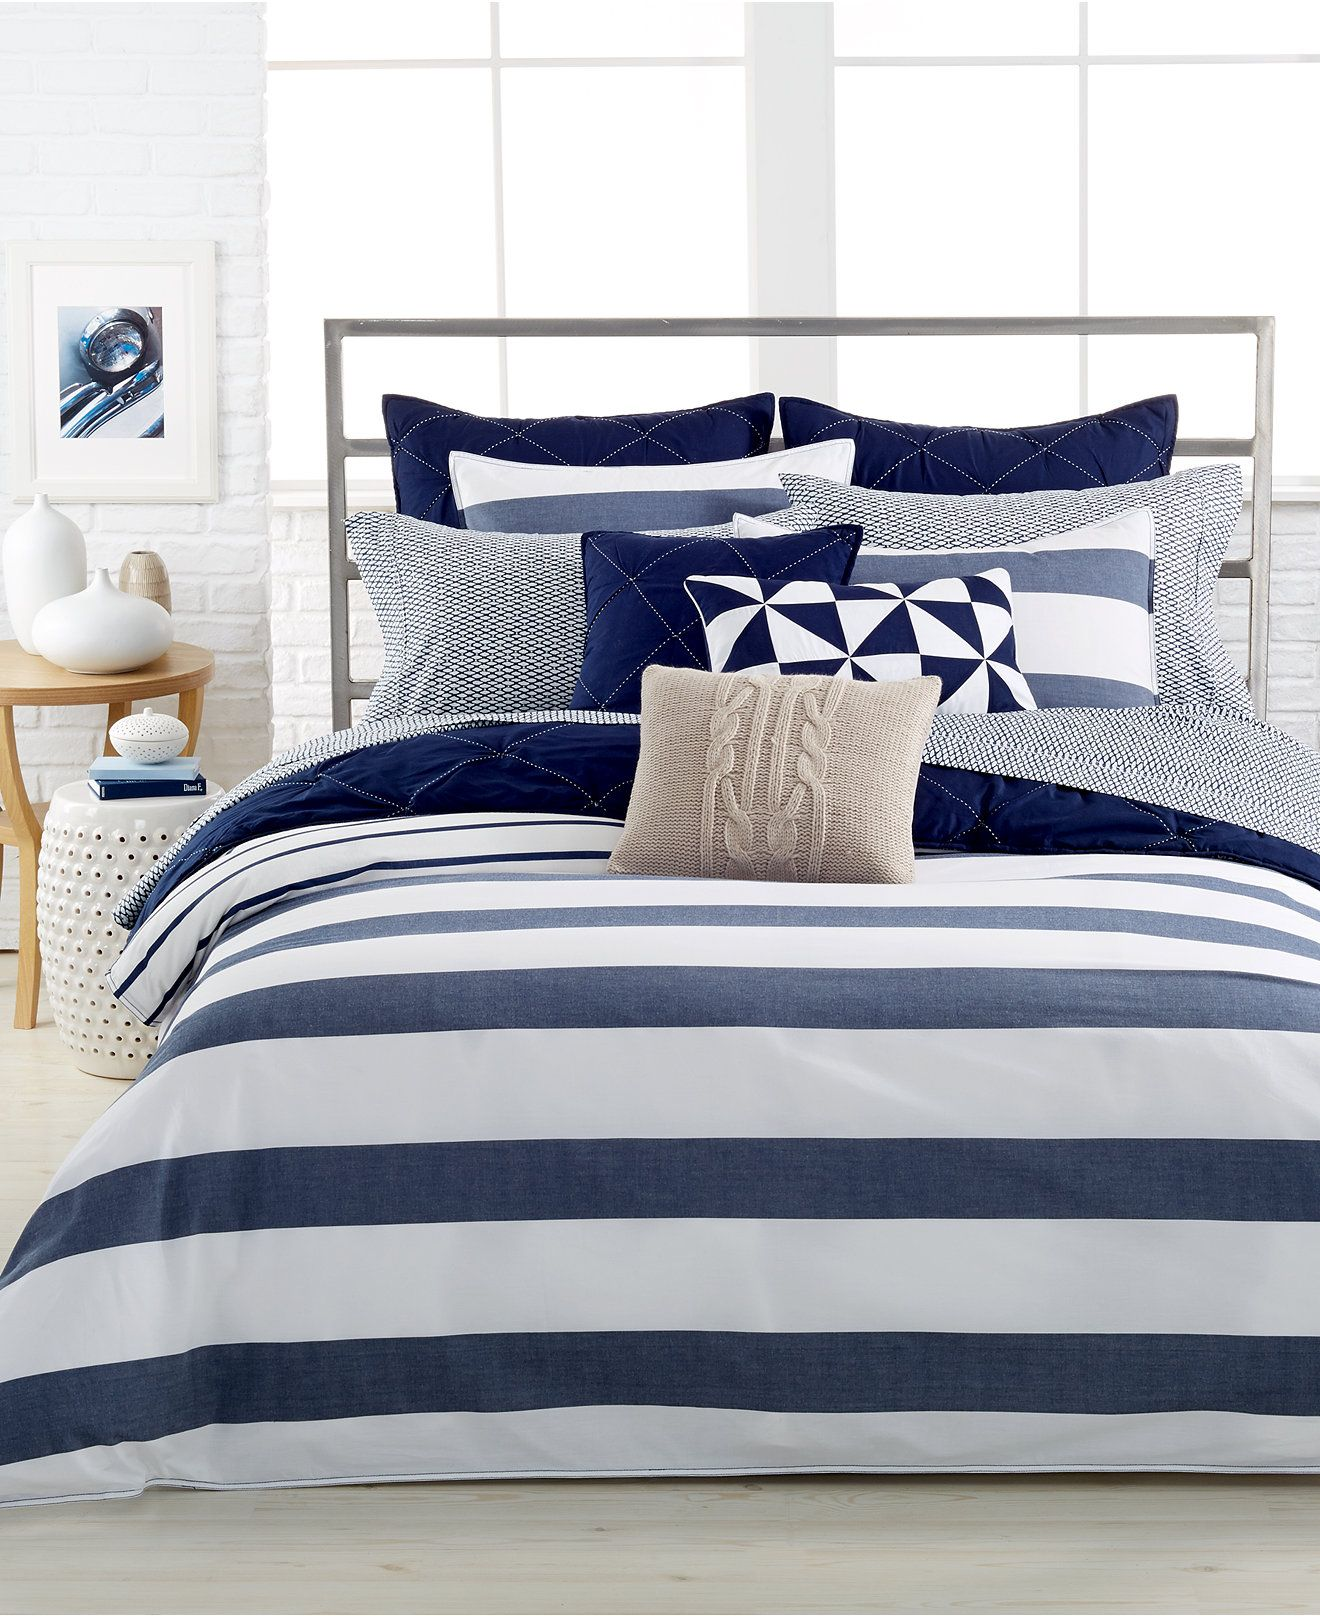 Nautica Lawndale Navy Comforter And Duvet Cover Sets Bedding Collections Bed Bath Macy S Navy Comforter Sets Navy Bedding Navy Comforter